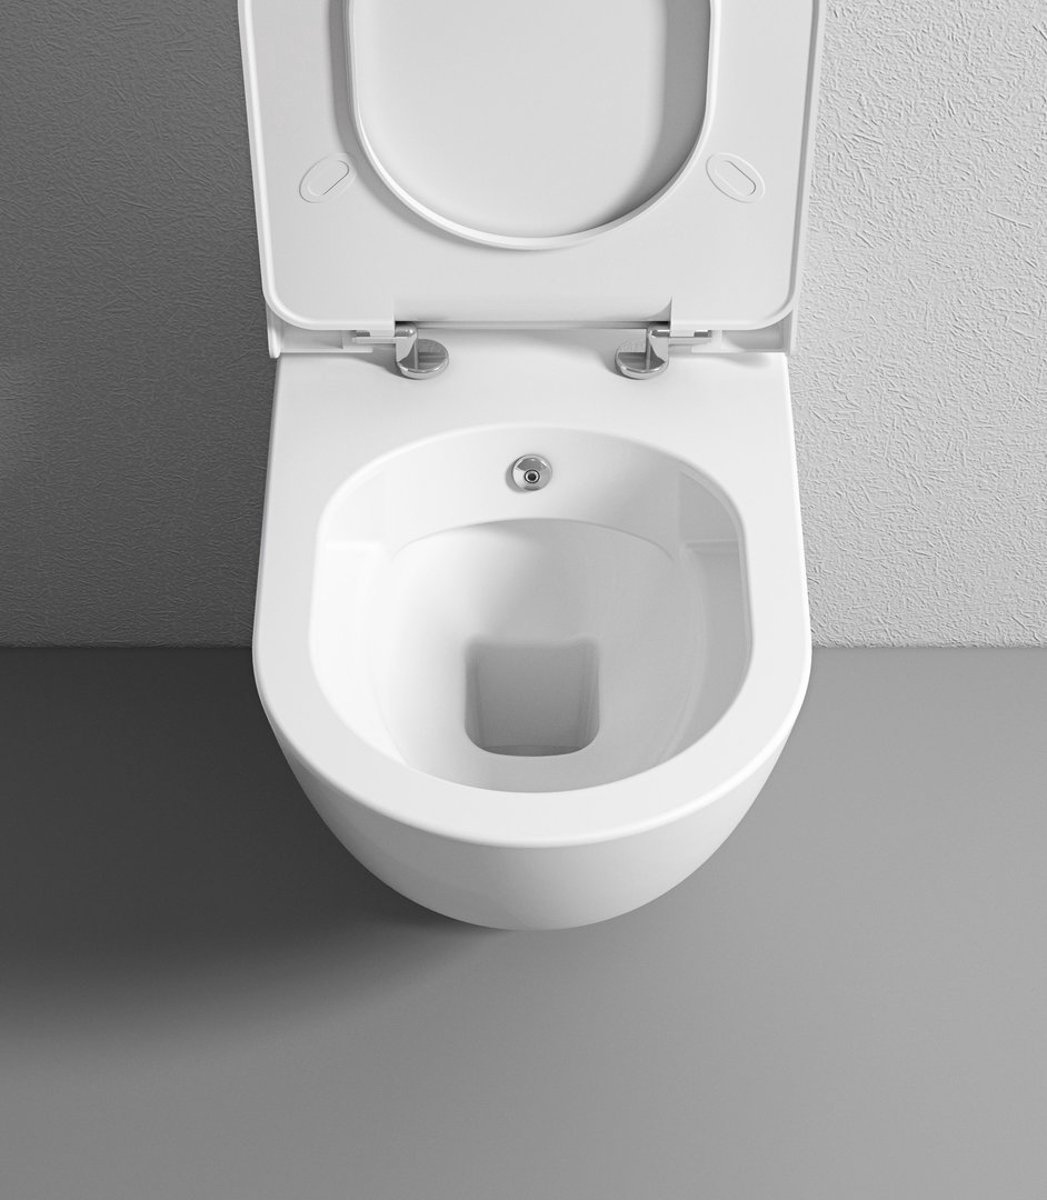 Wondrous Sanitear Thor Hangend Toilet Met Bidet Functie Gmtry Best Dining Table And Chair Ideas Images Gmtryco